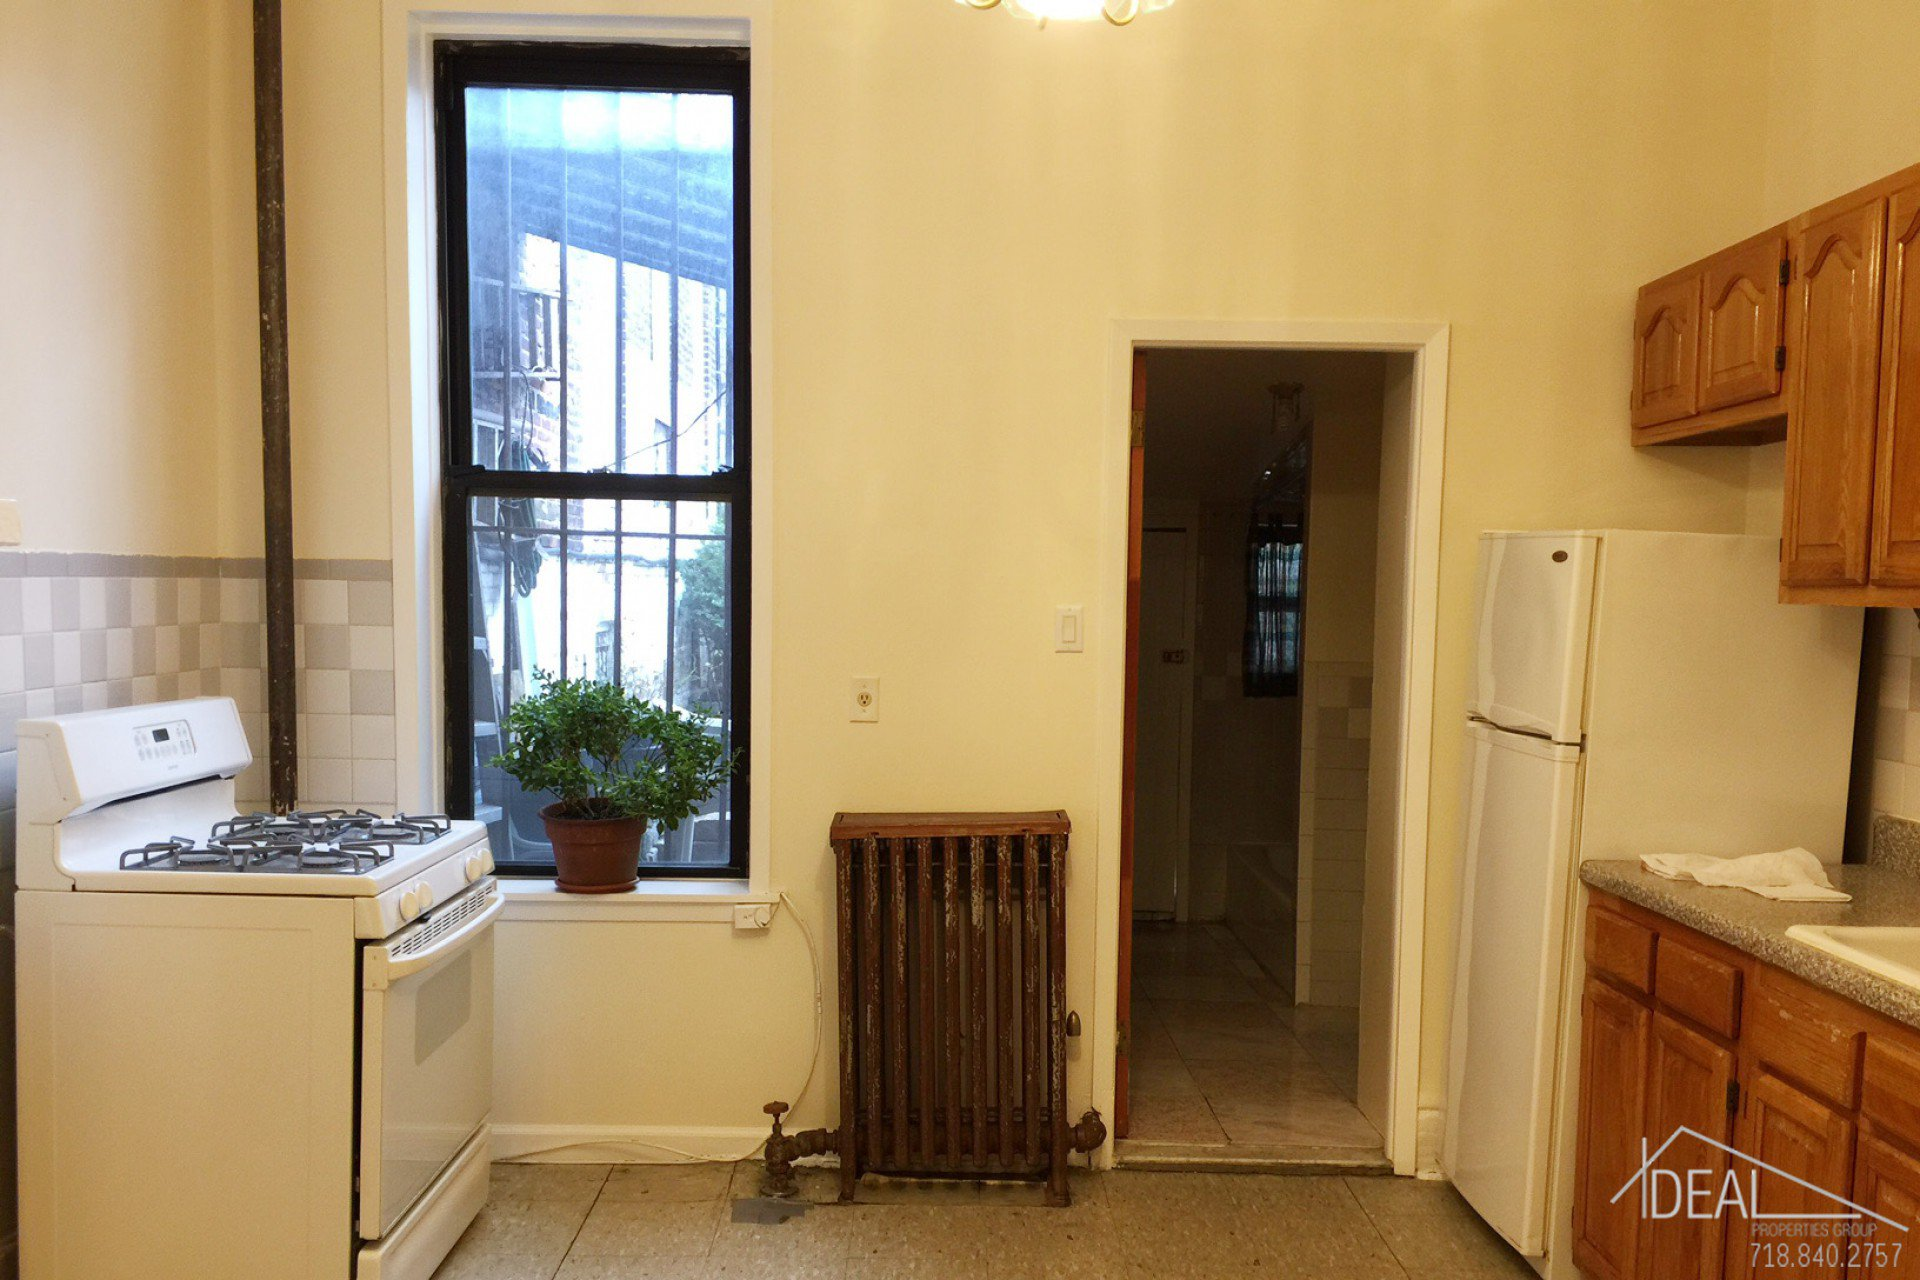 Junior 1 Bedroom Bathroom Apartment For Rent In Park Slope